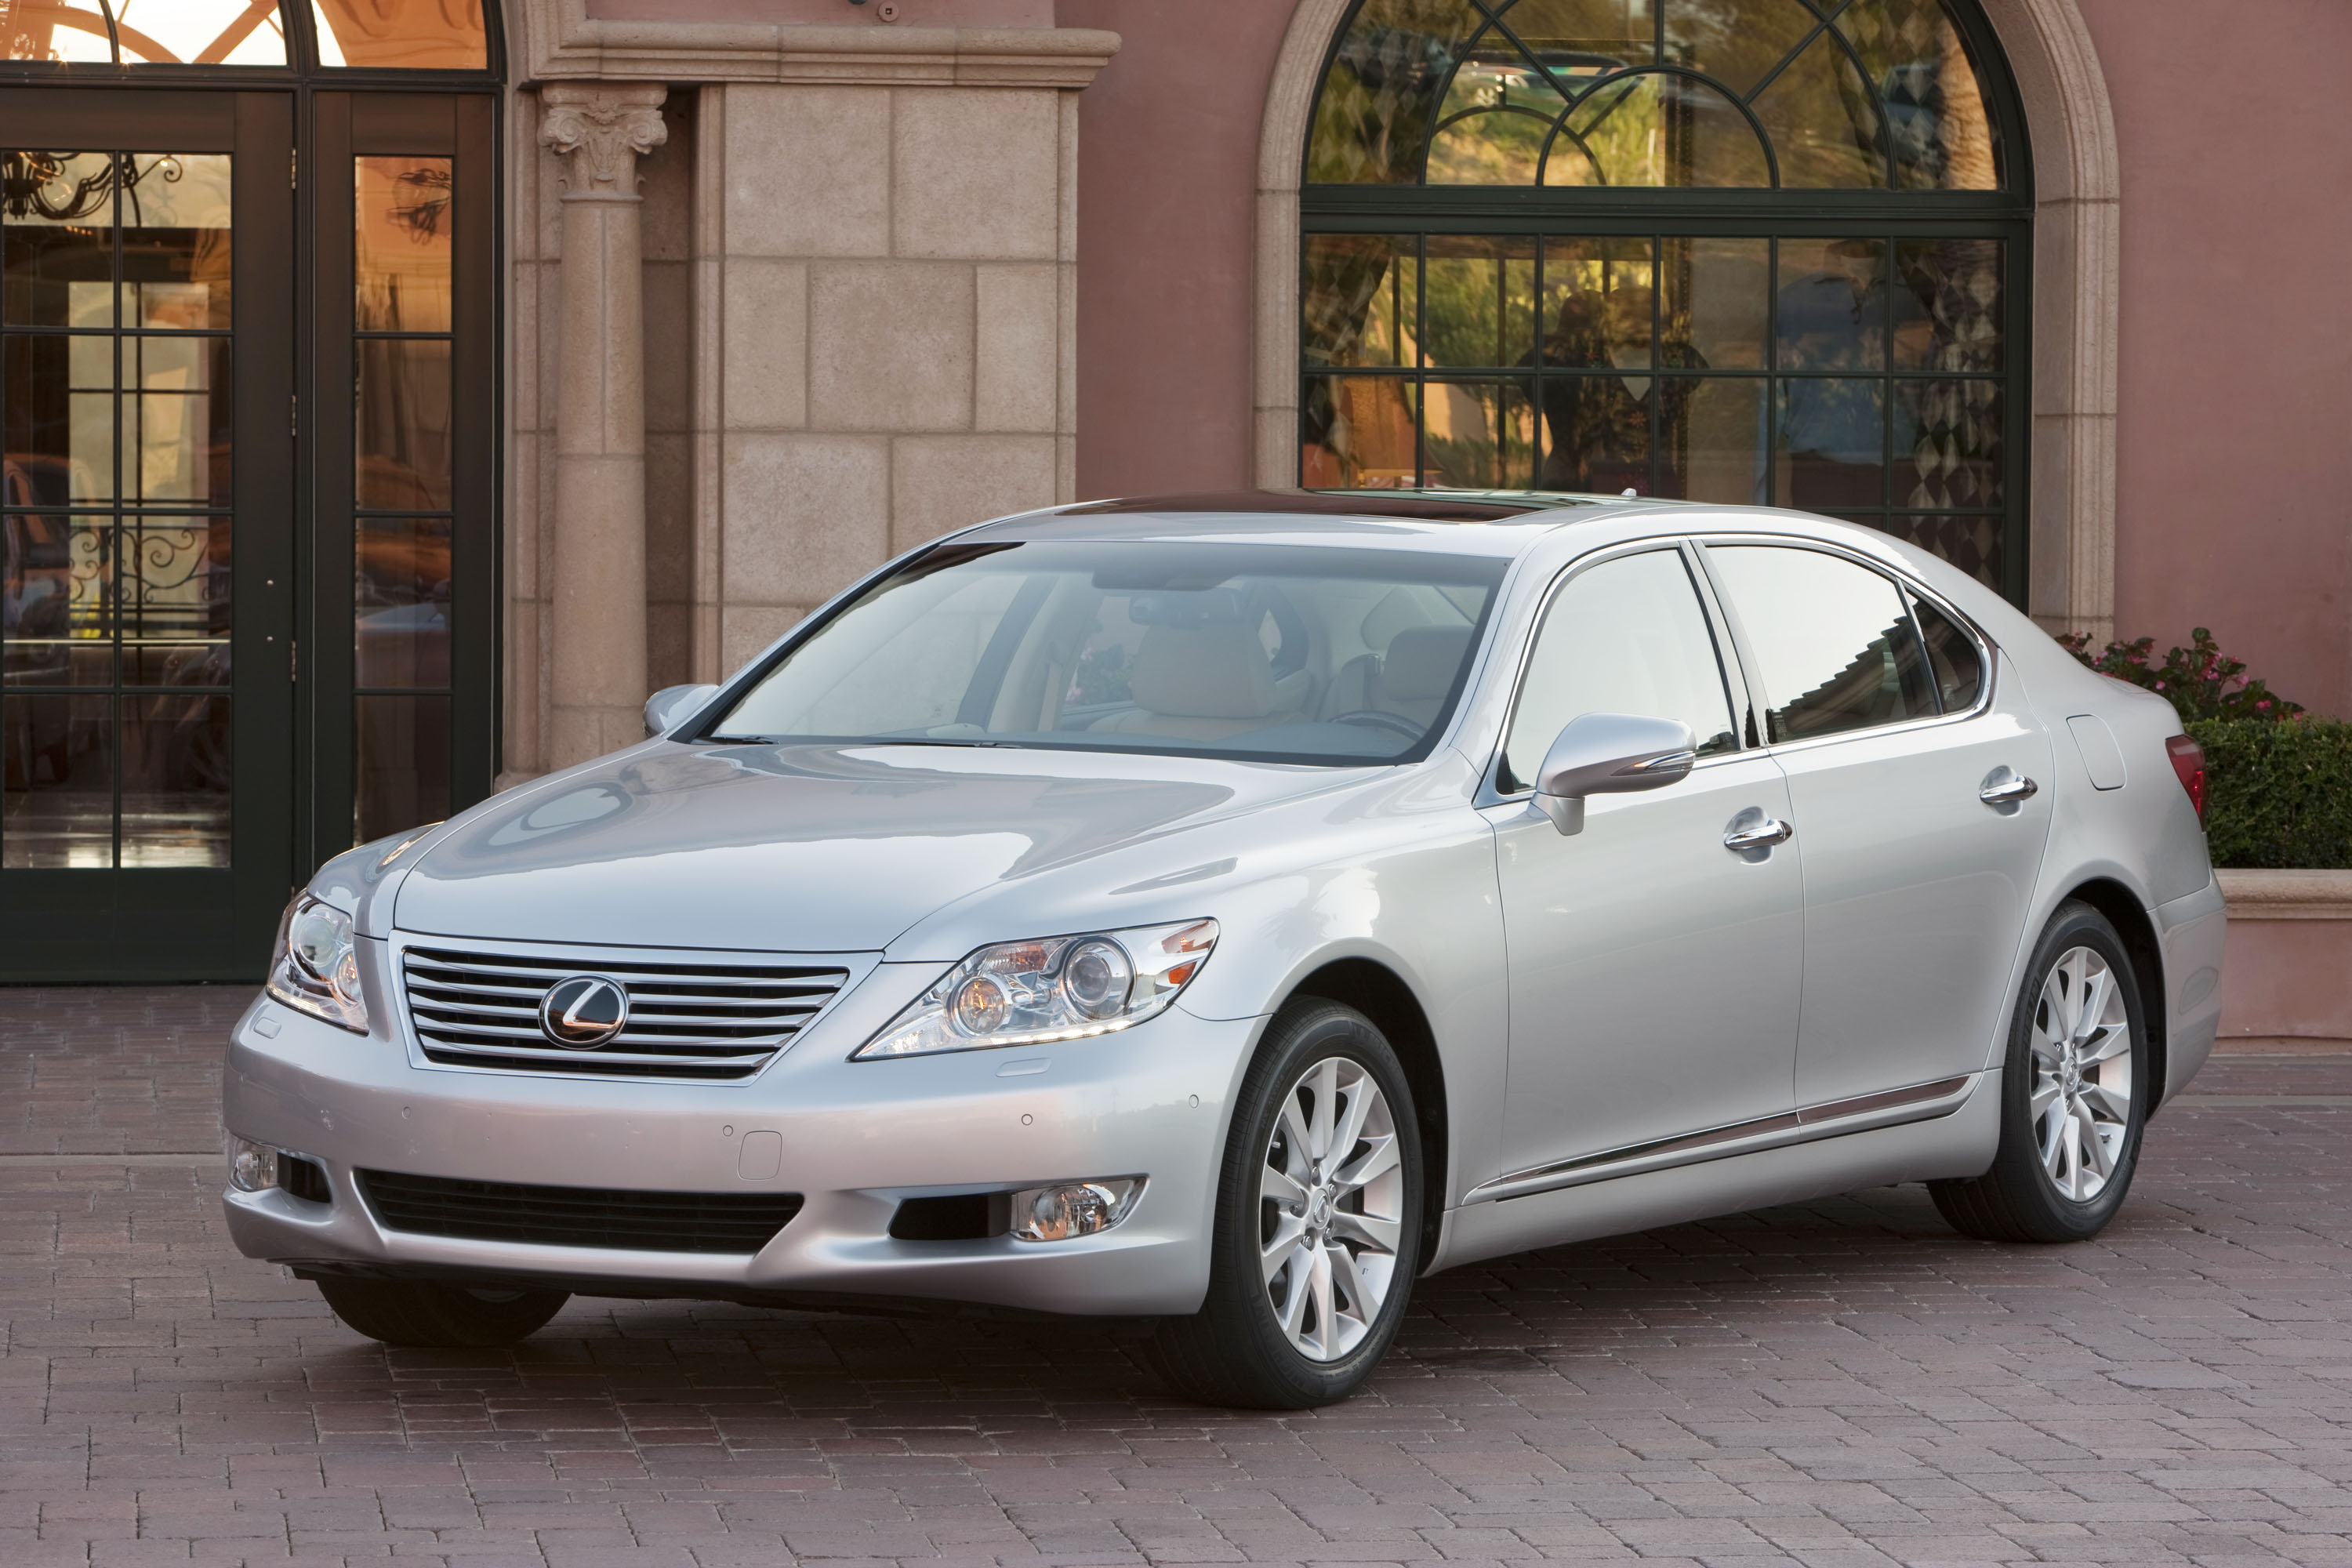 Mercedes Of Denver >> 2012 Lexus LS 460 Review, Ratings, Specs, Prices, and Photos - The Car Connection